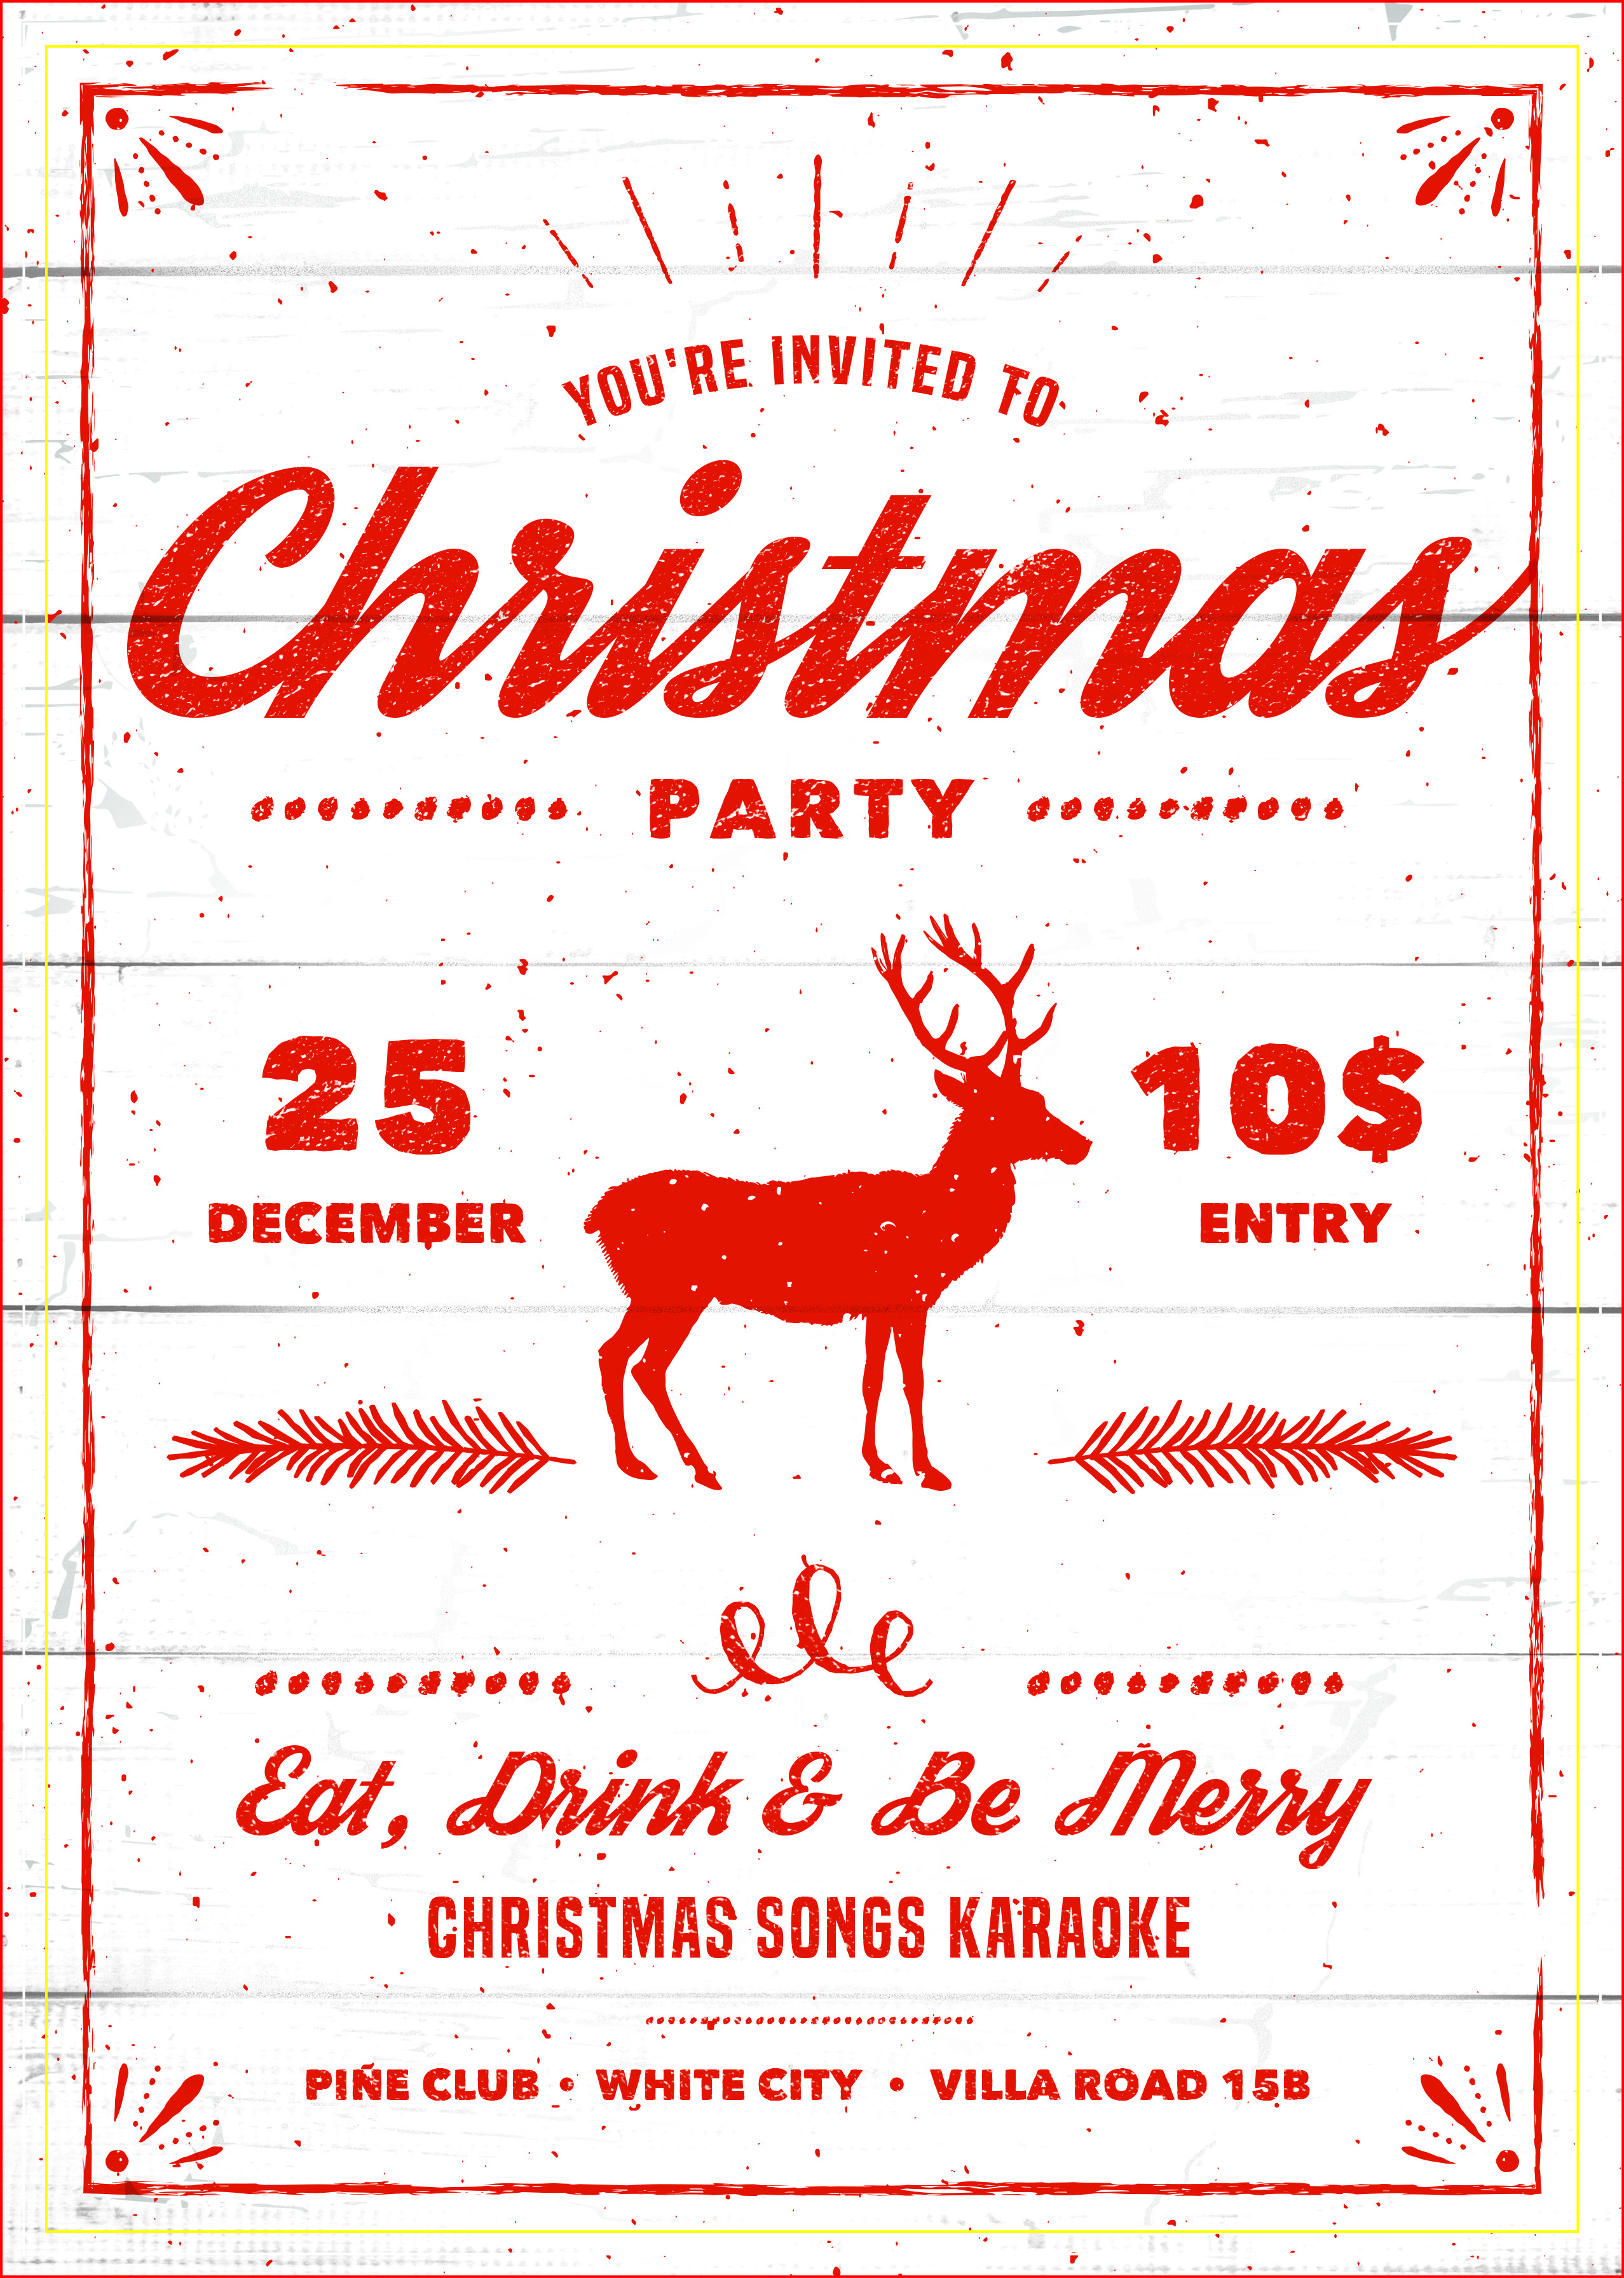 Best Christmas Party Invitations Free Printable | Holiday ideas ...